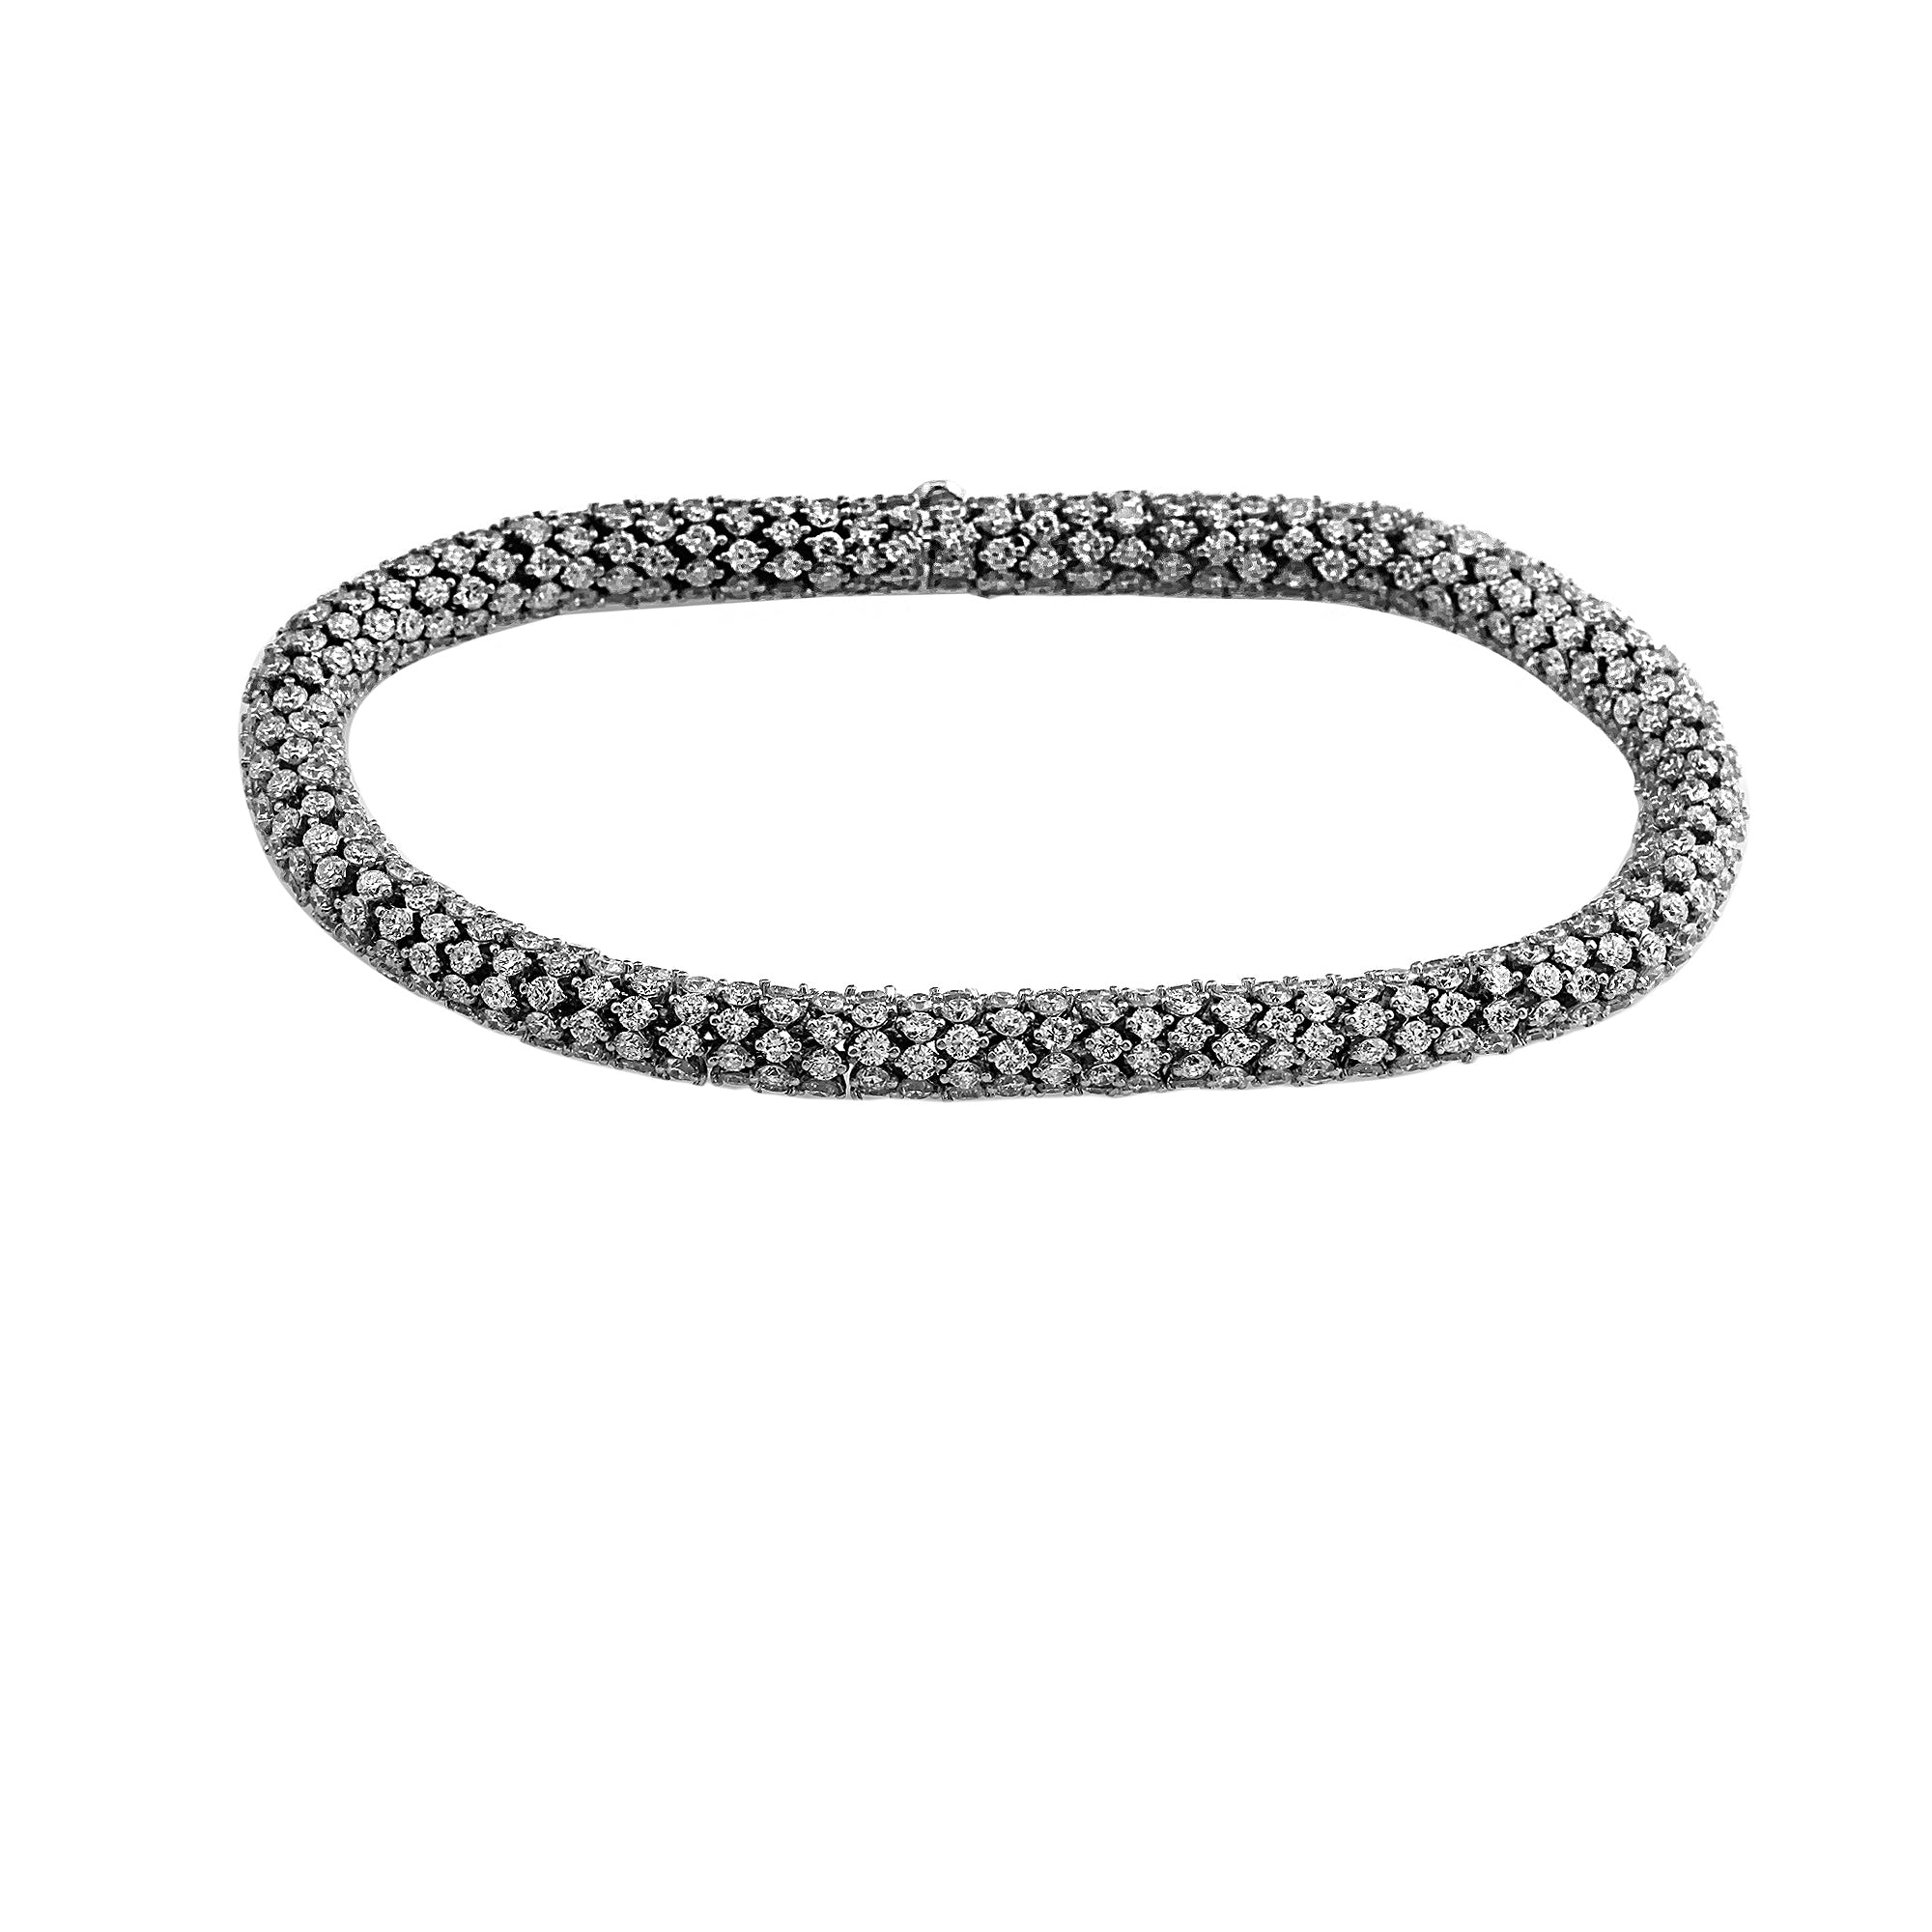 14K White Gold 16.75CTTW Lab Grown Diamond Fancy Link Bracelet